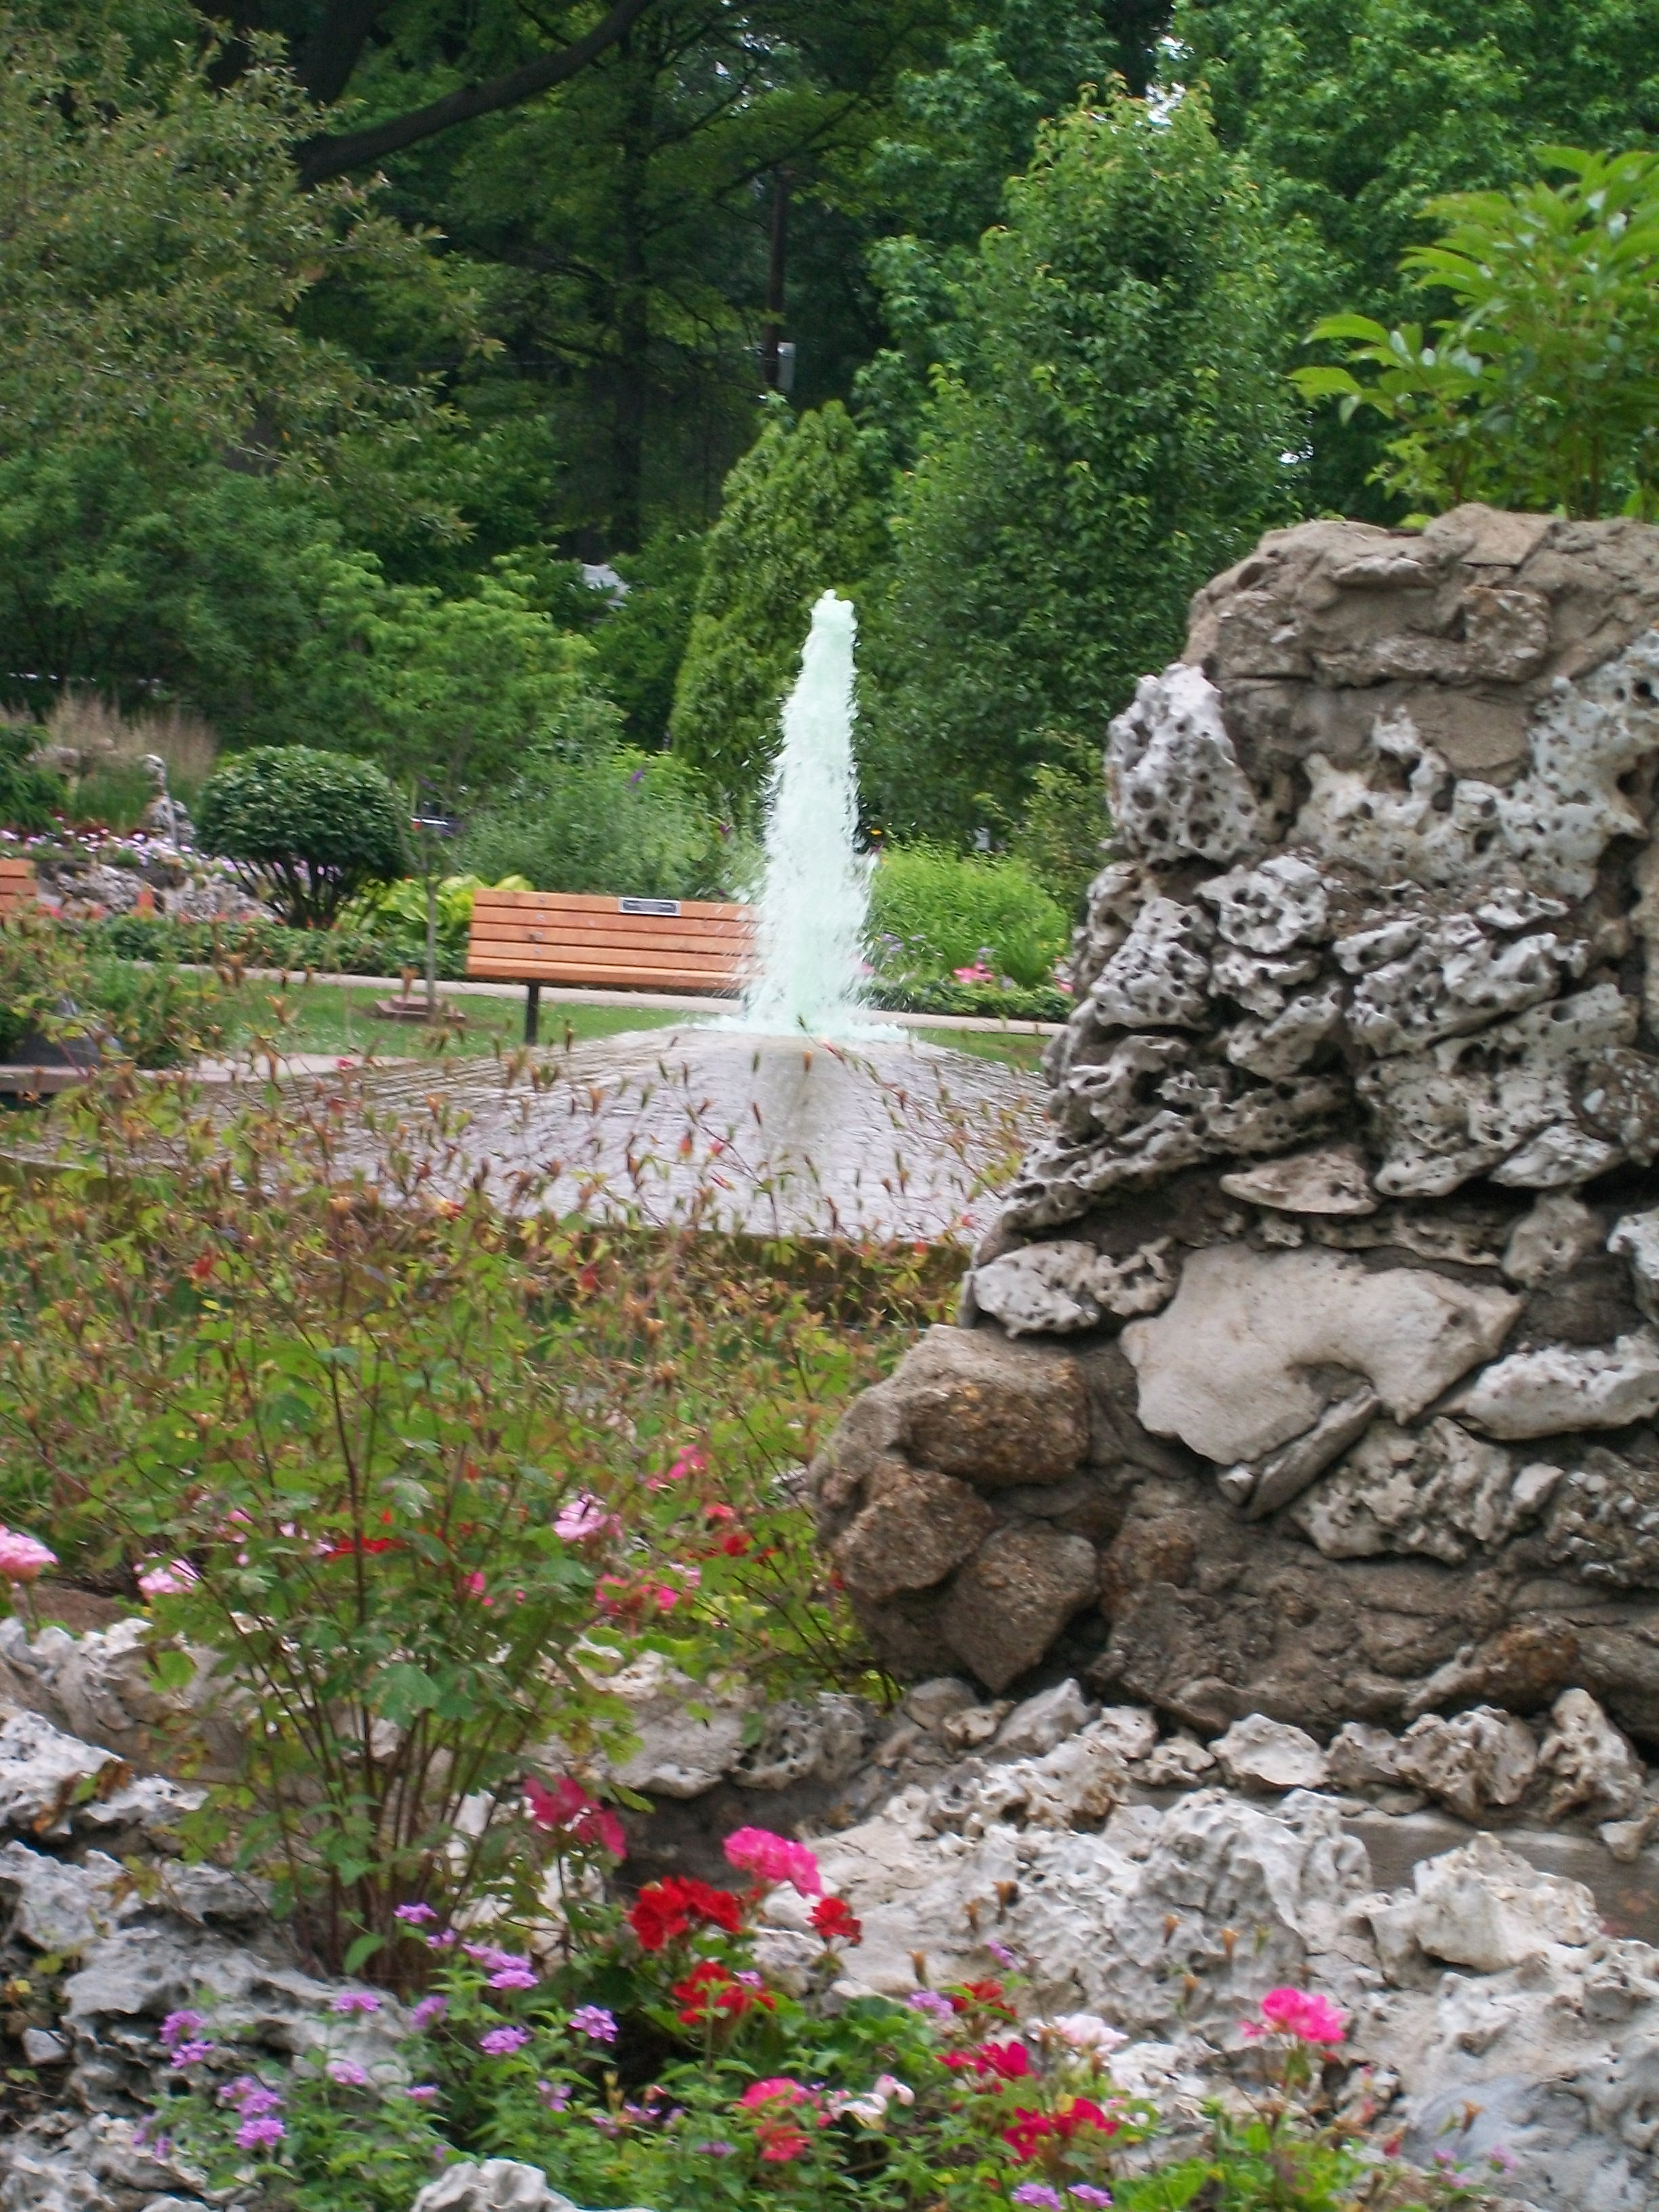 The fountain and rock formations